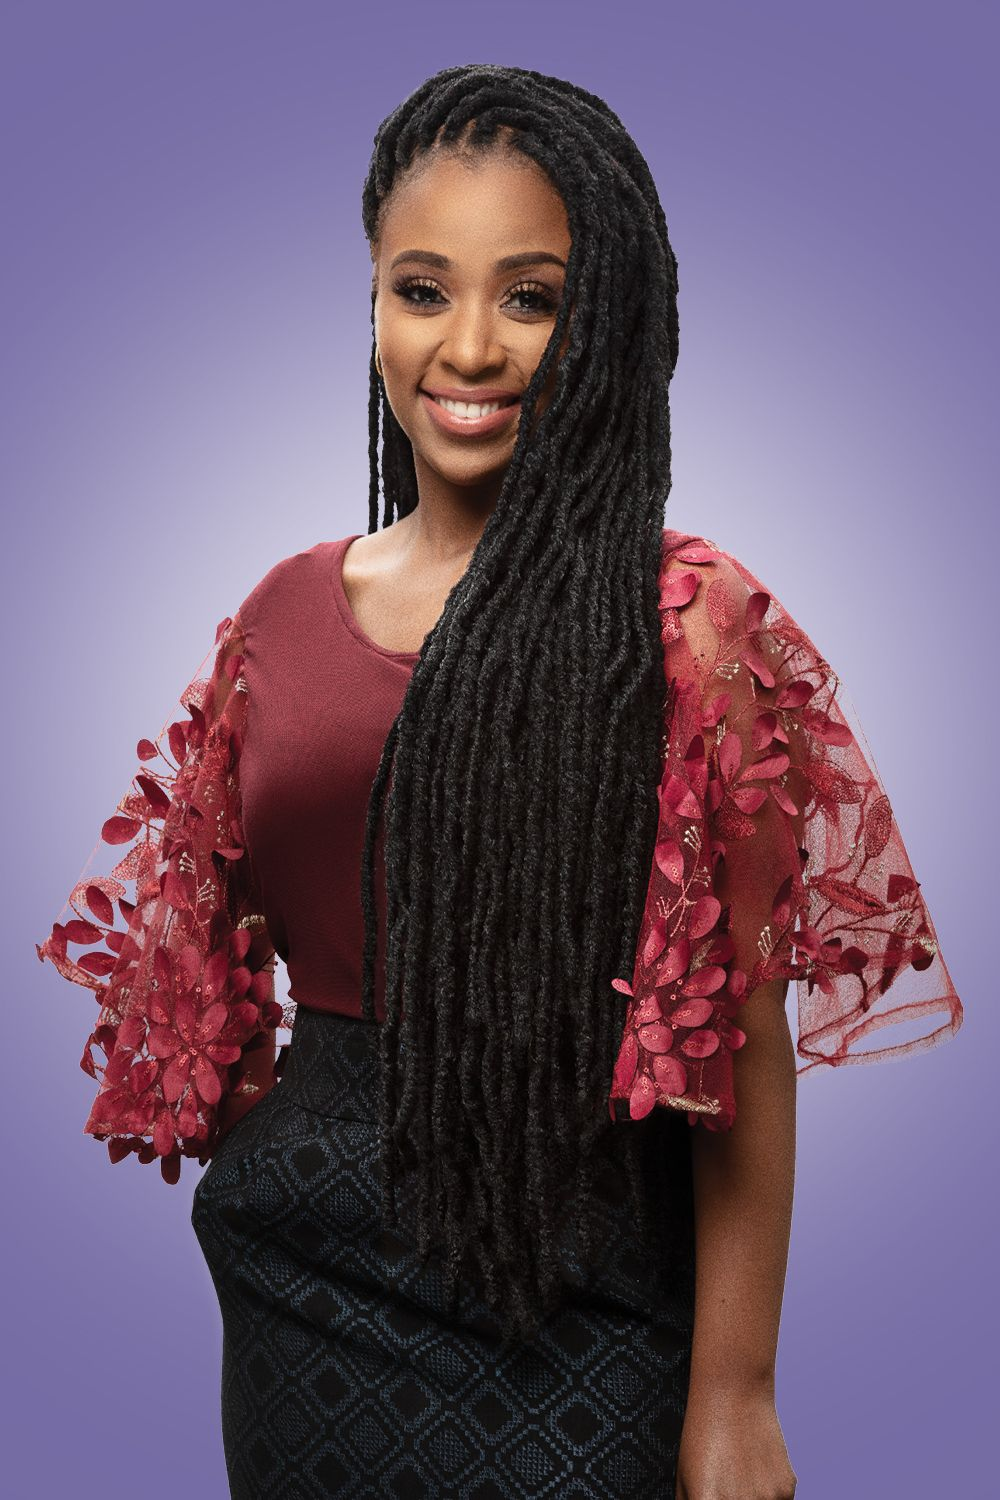 Darling Jozi Dred Lite In 2020 Curly Hair Styles Curly Hair Extensions Hair Wrap Scarf